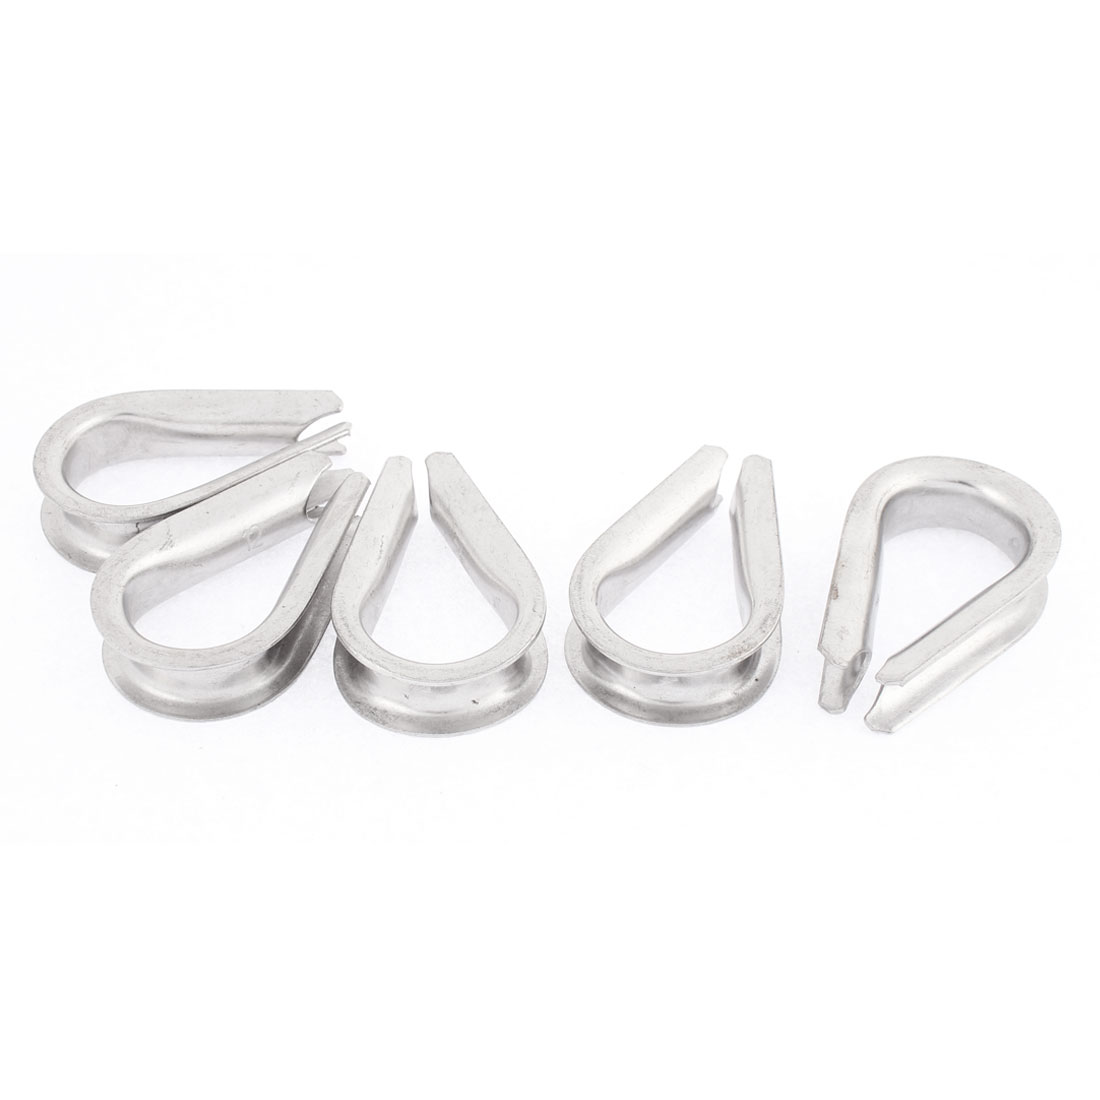 12mm Standard Wire Rope Cable Thimbles Rigging Lifting Gear 5pcs